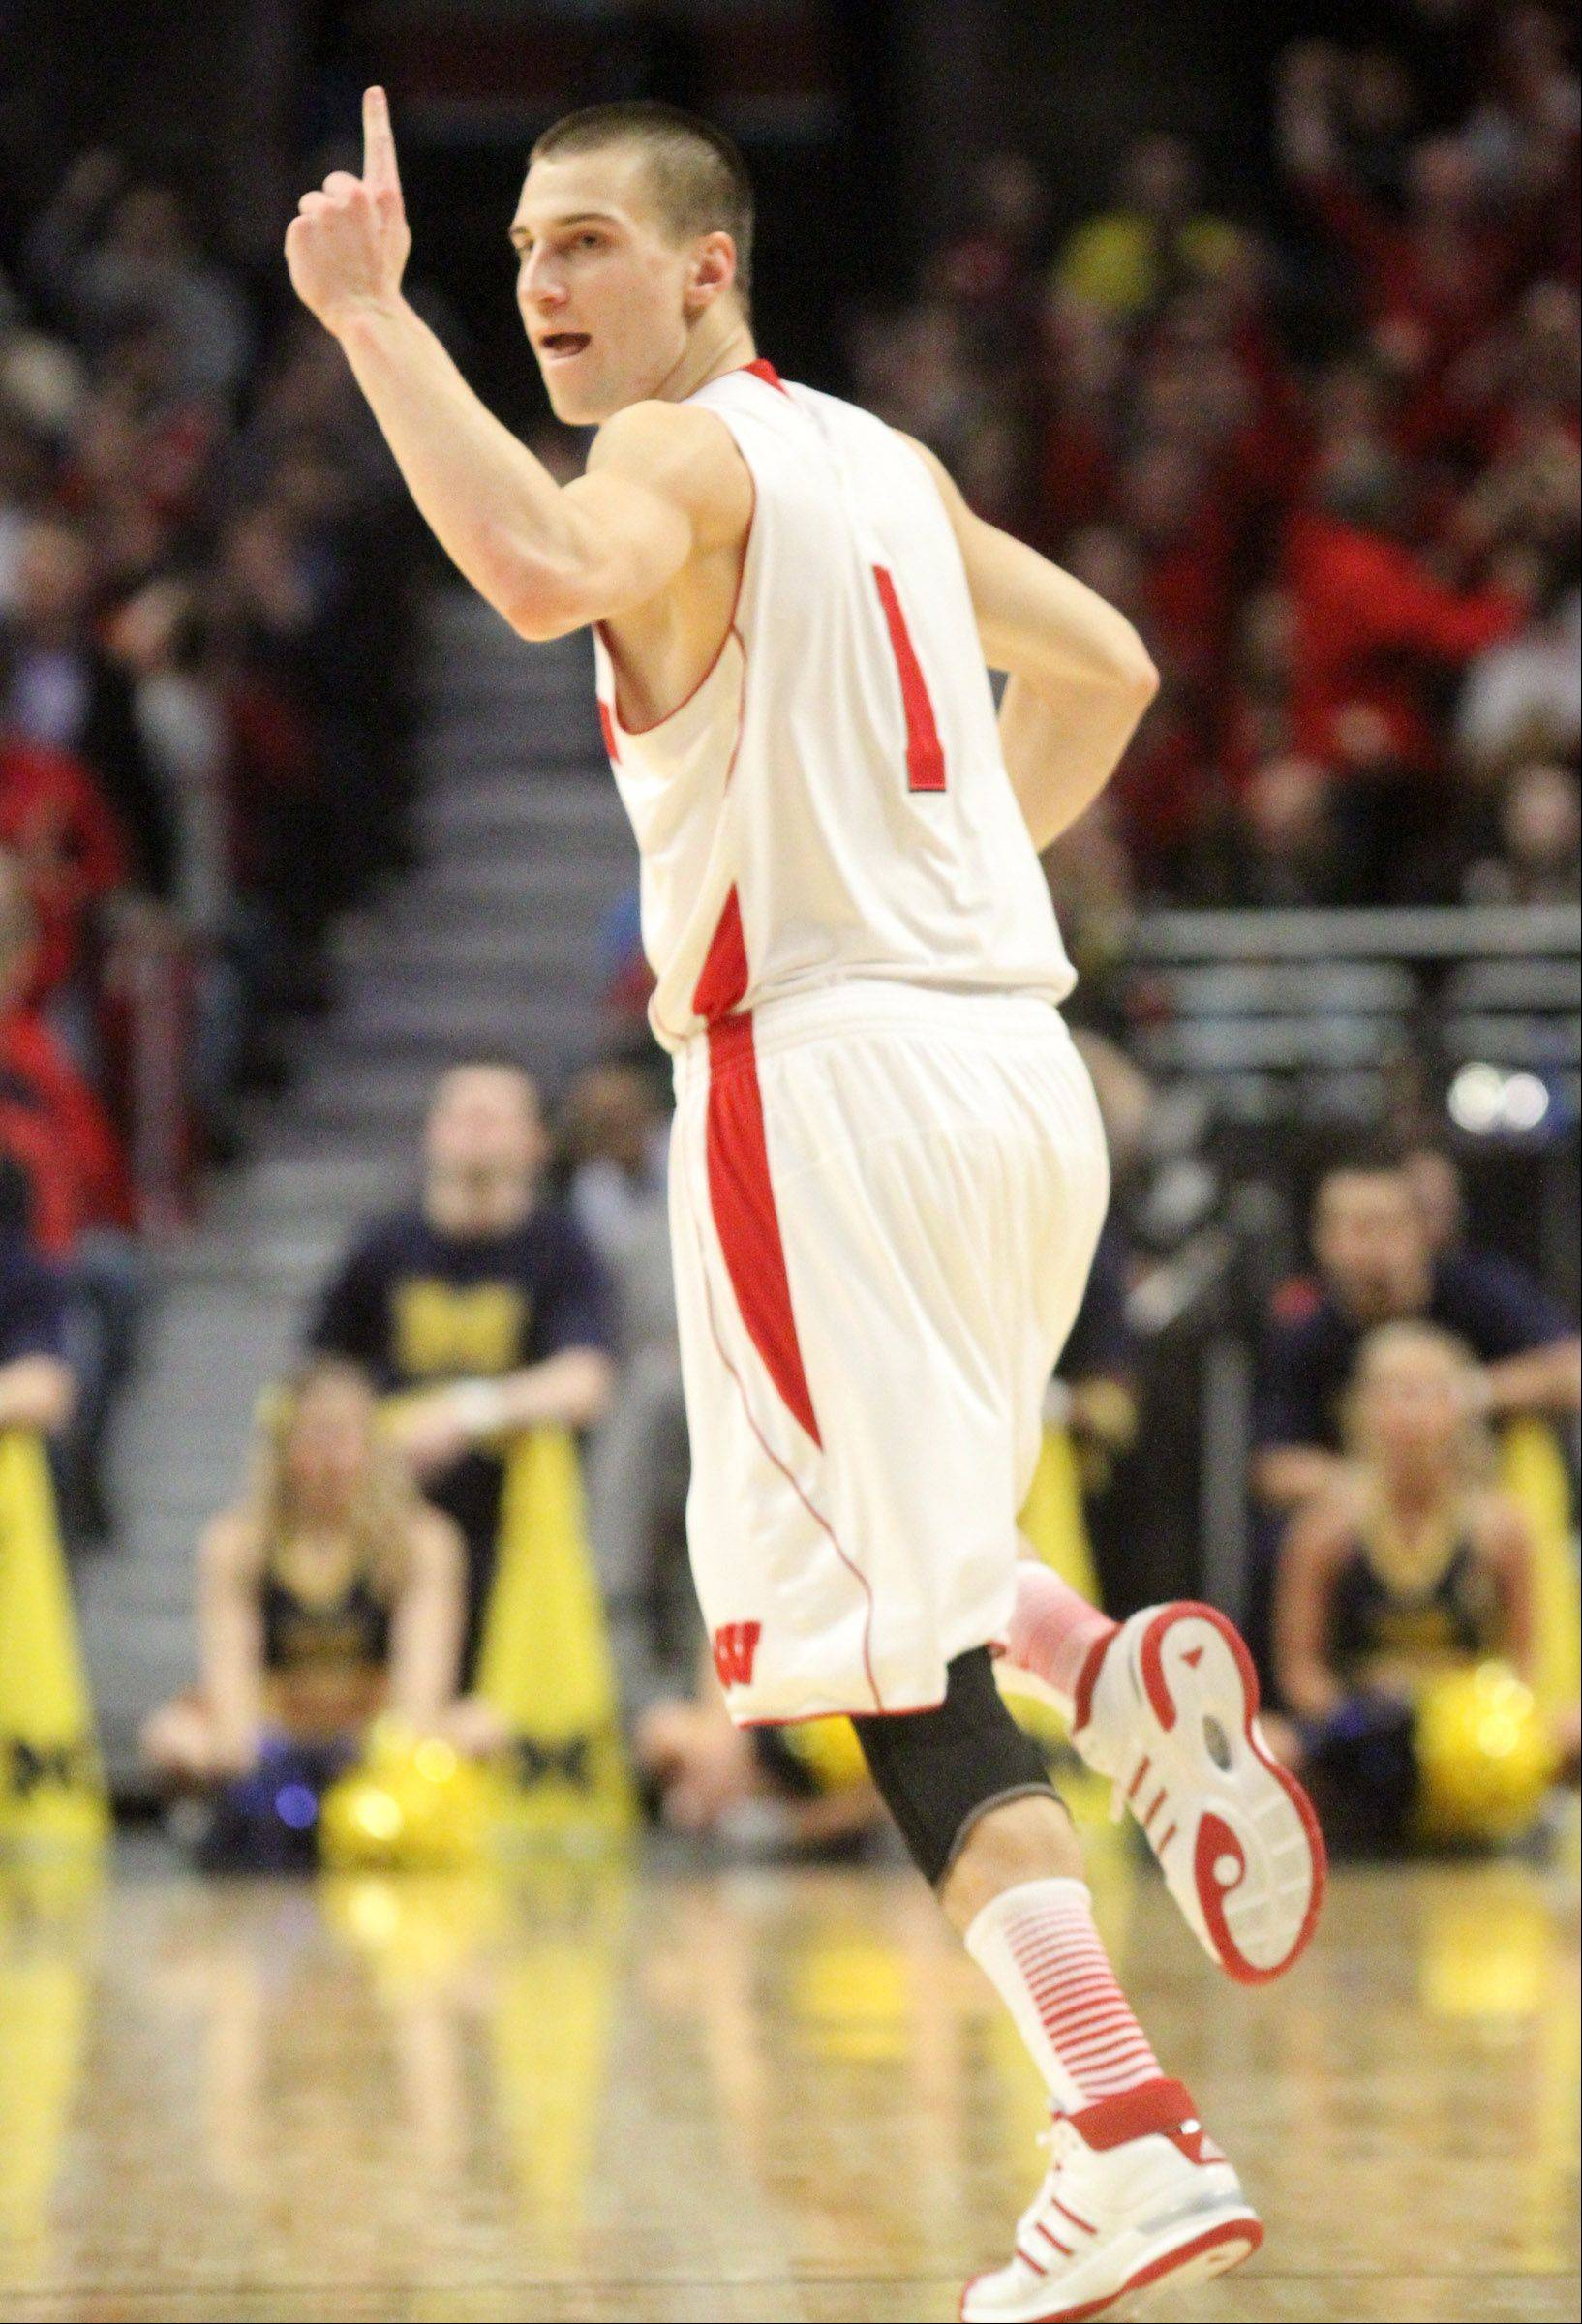 Guard Ben Brust, here celebrating another 3-point basket, is one of the top scorers and rebounders for a balanced Wisconsin team. The Mundelein grad from Hawthorn Woods averages more than 13 points per game for the Badgers.